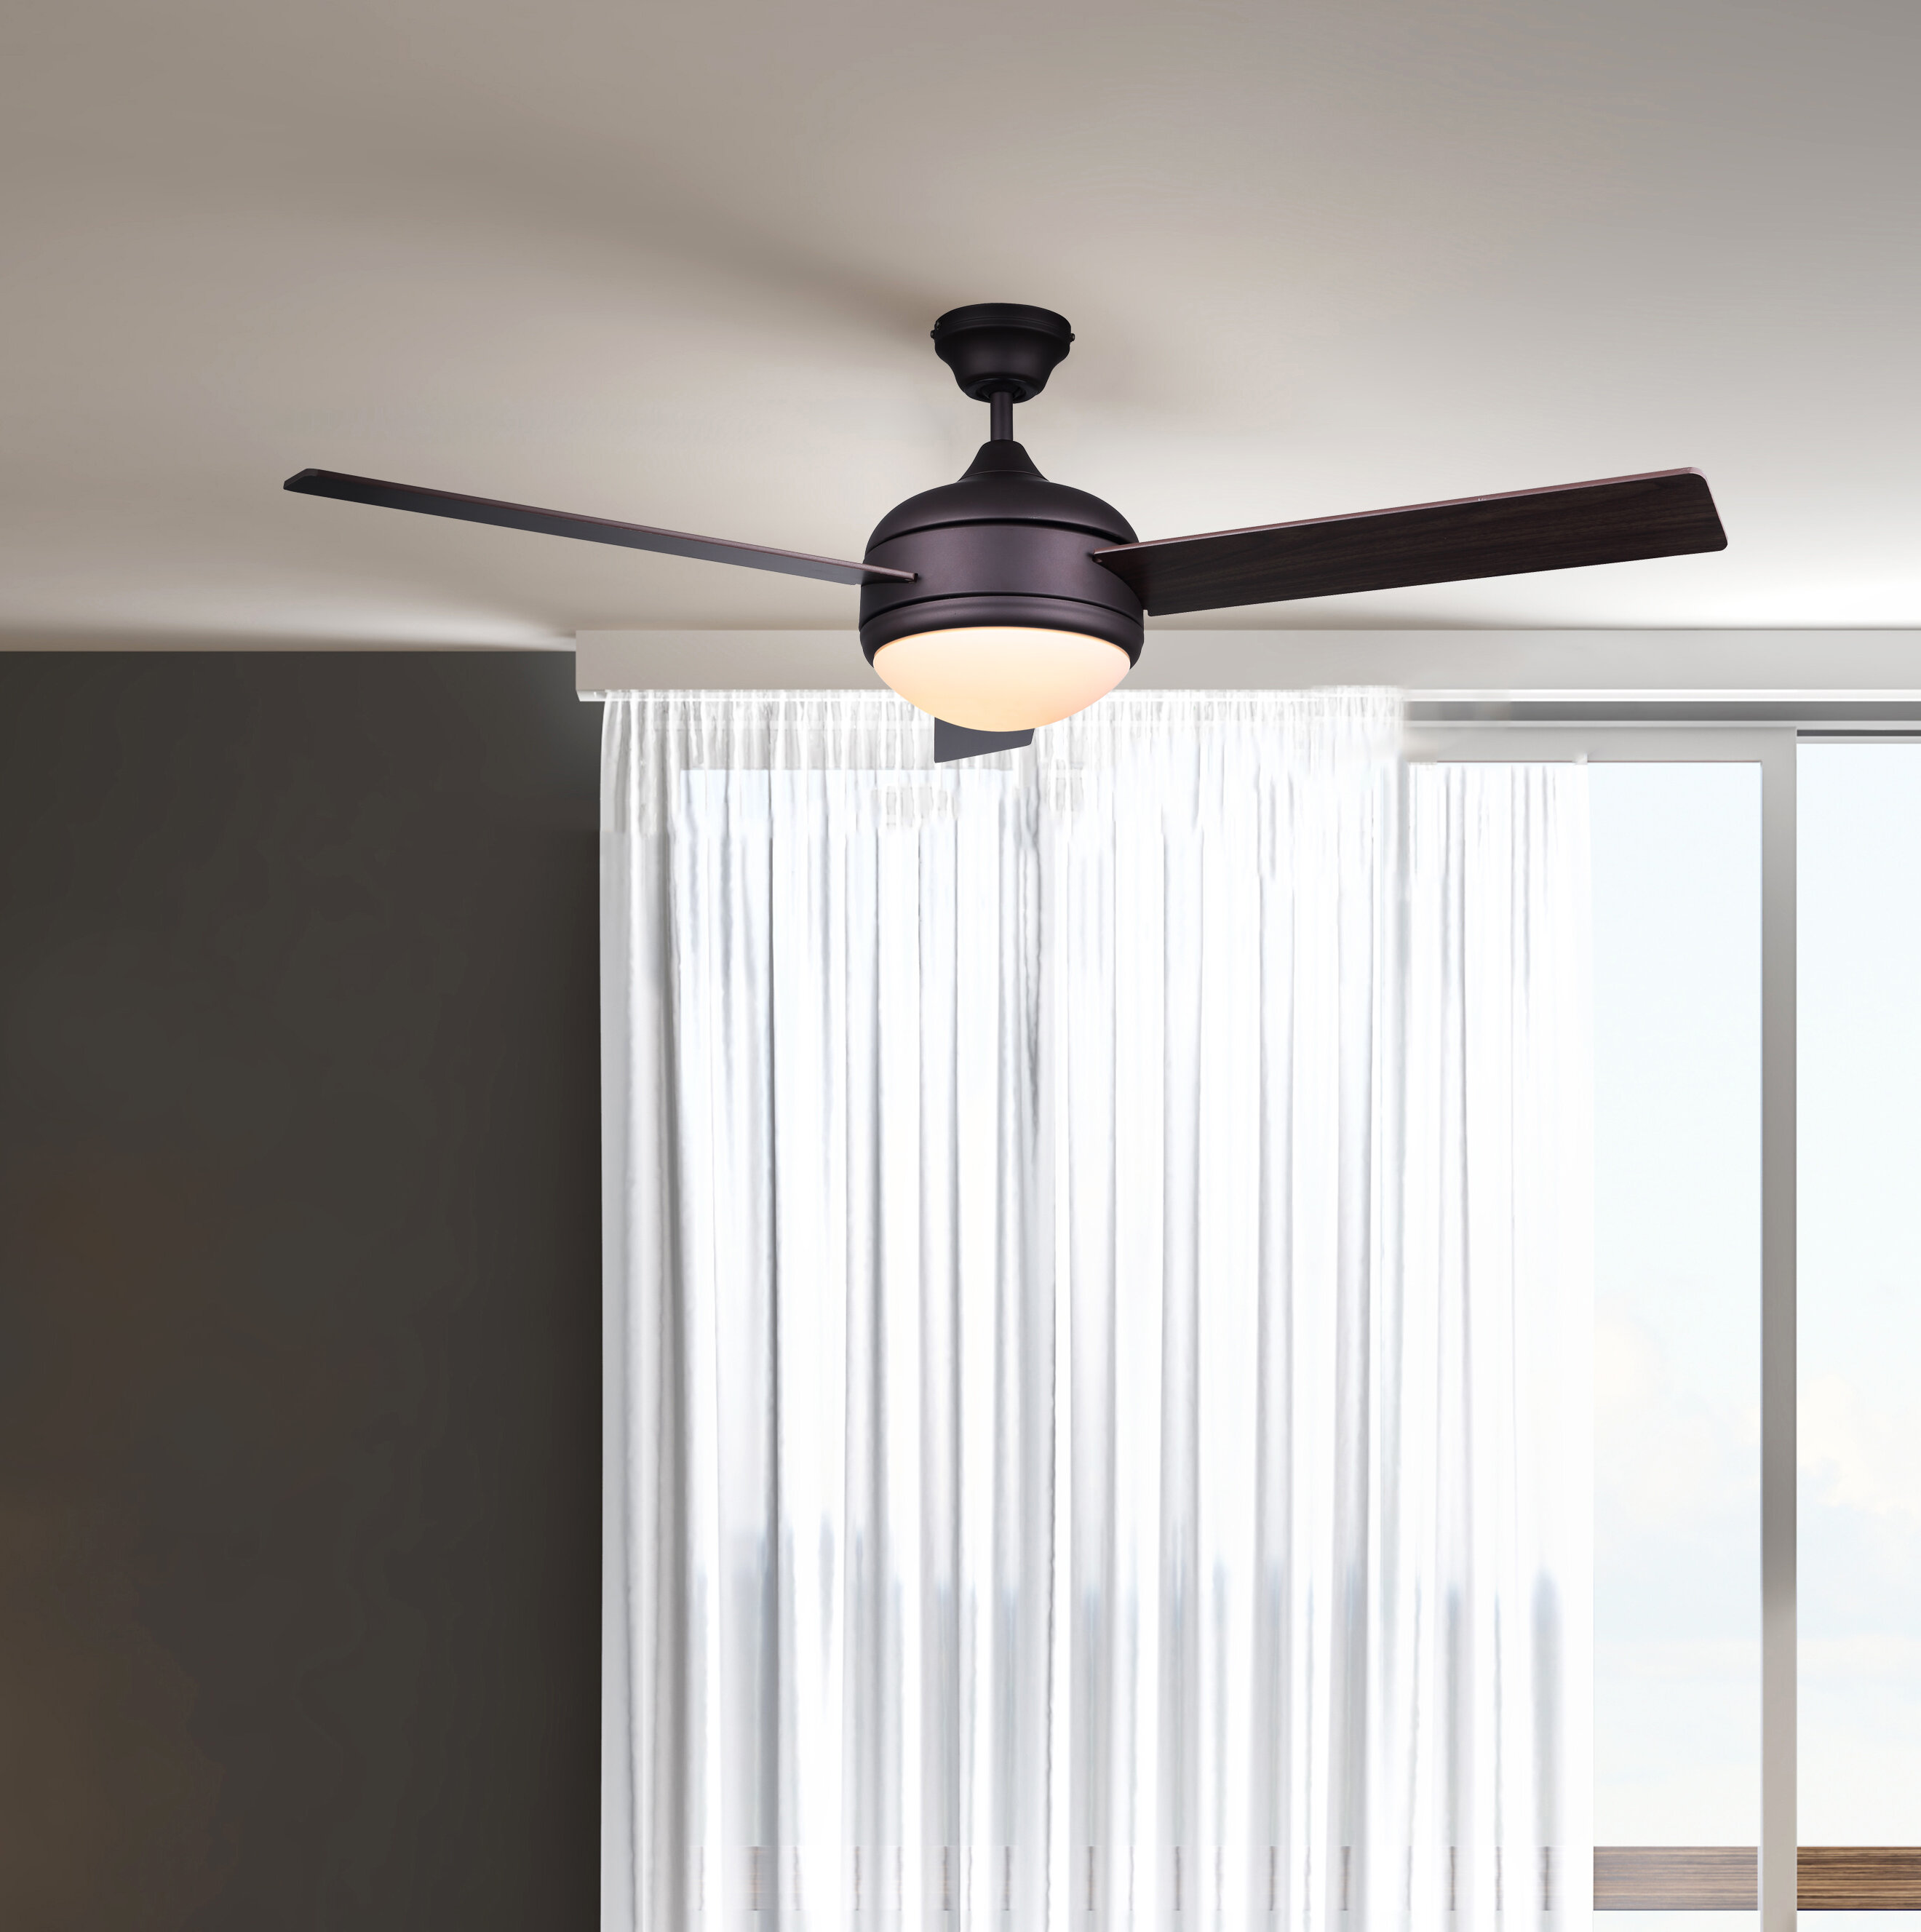 "Bedroom Kandi Natasha Hall Home: Ebern Designs 21"" Kandi 3-Blade Ceiling Fan With Remote"